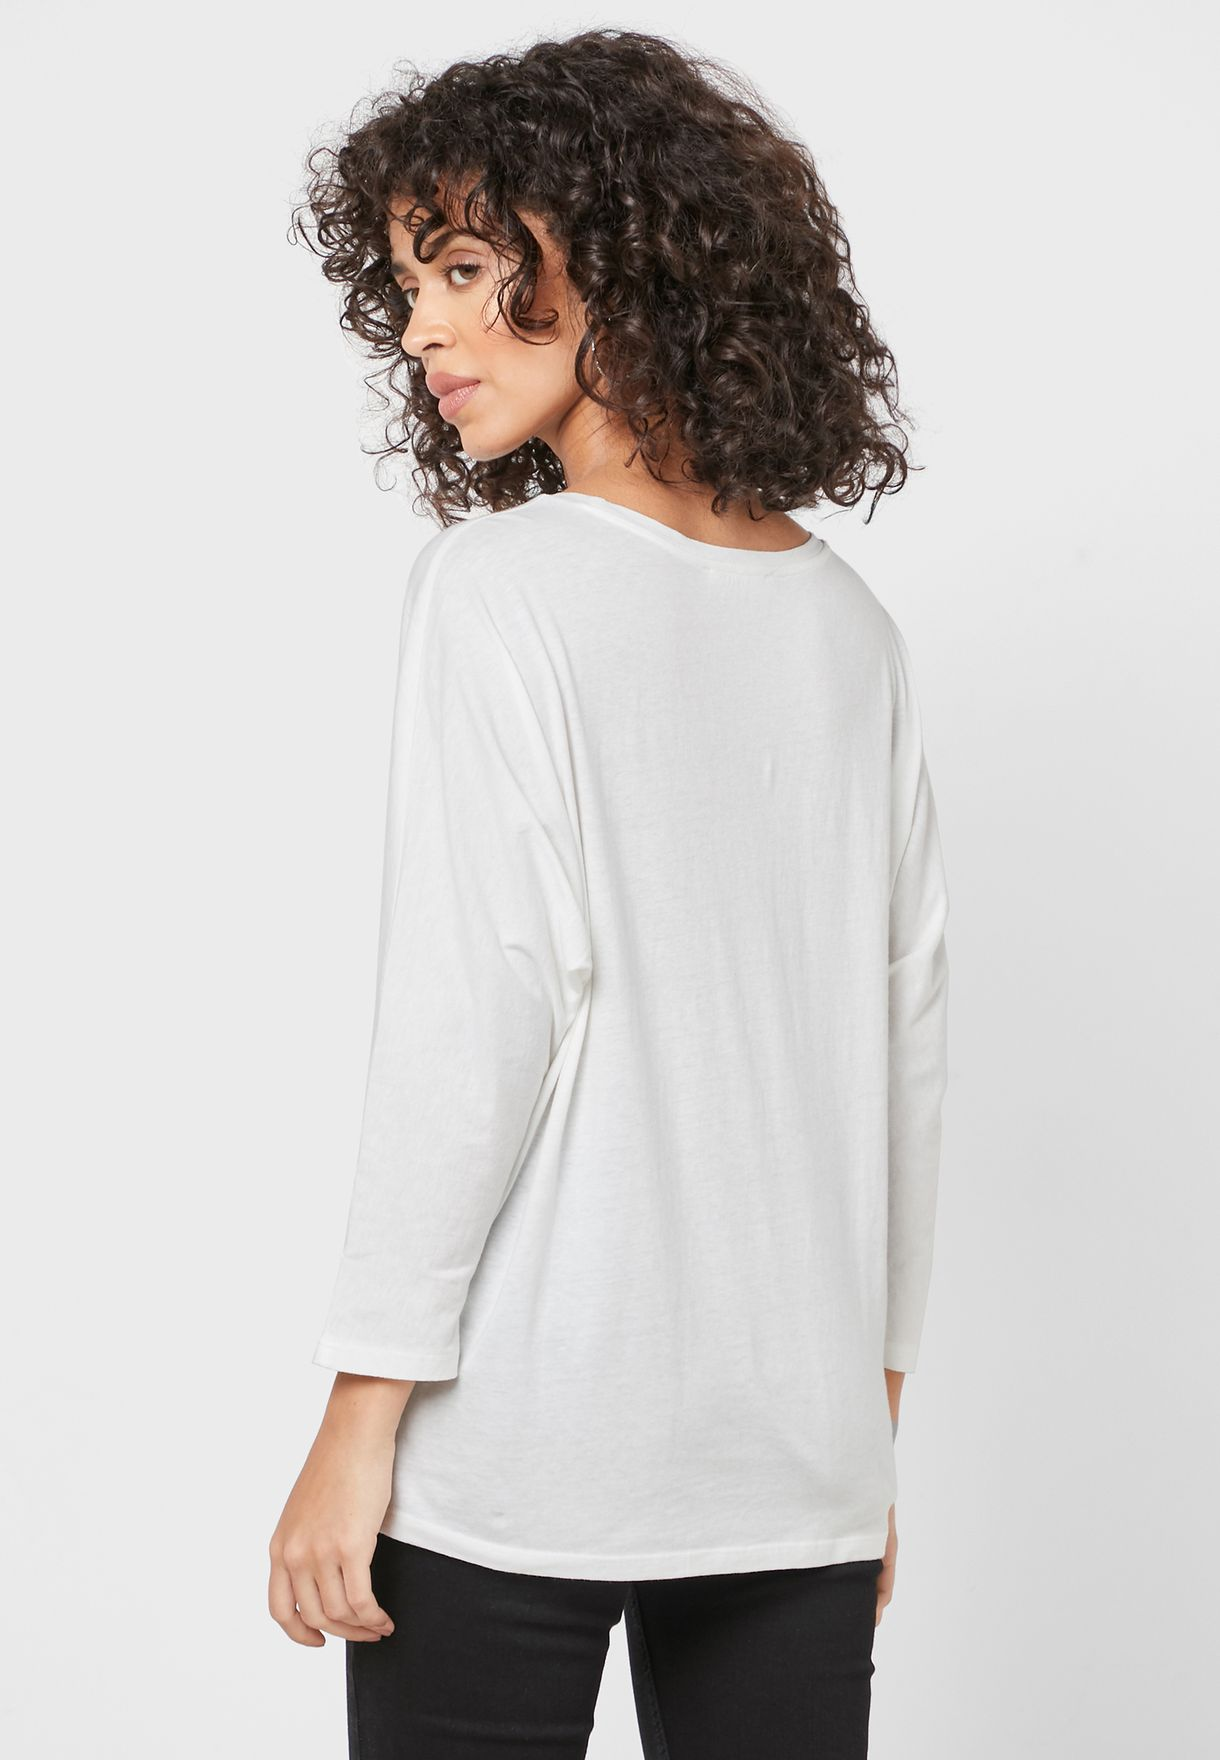 Mango Scoop Neck T-shirt - Fashion